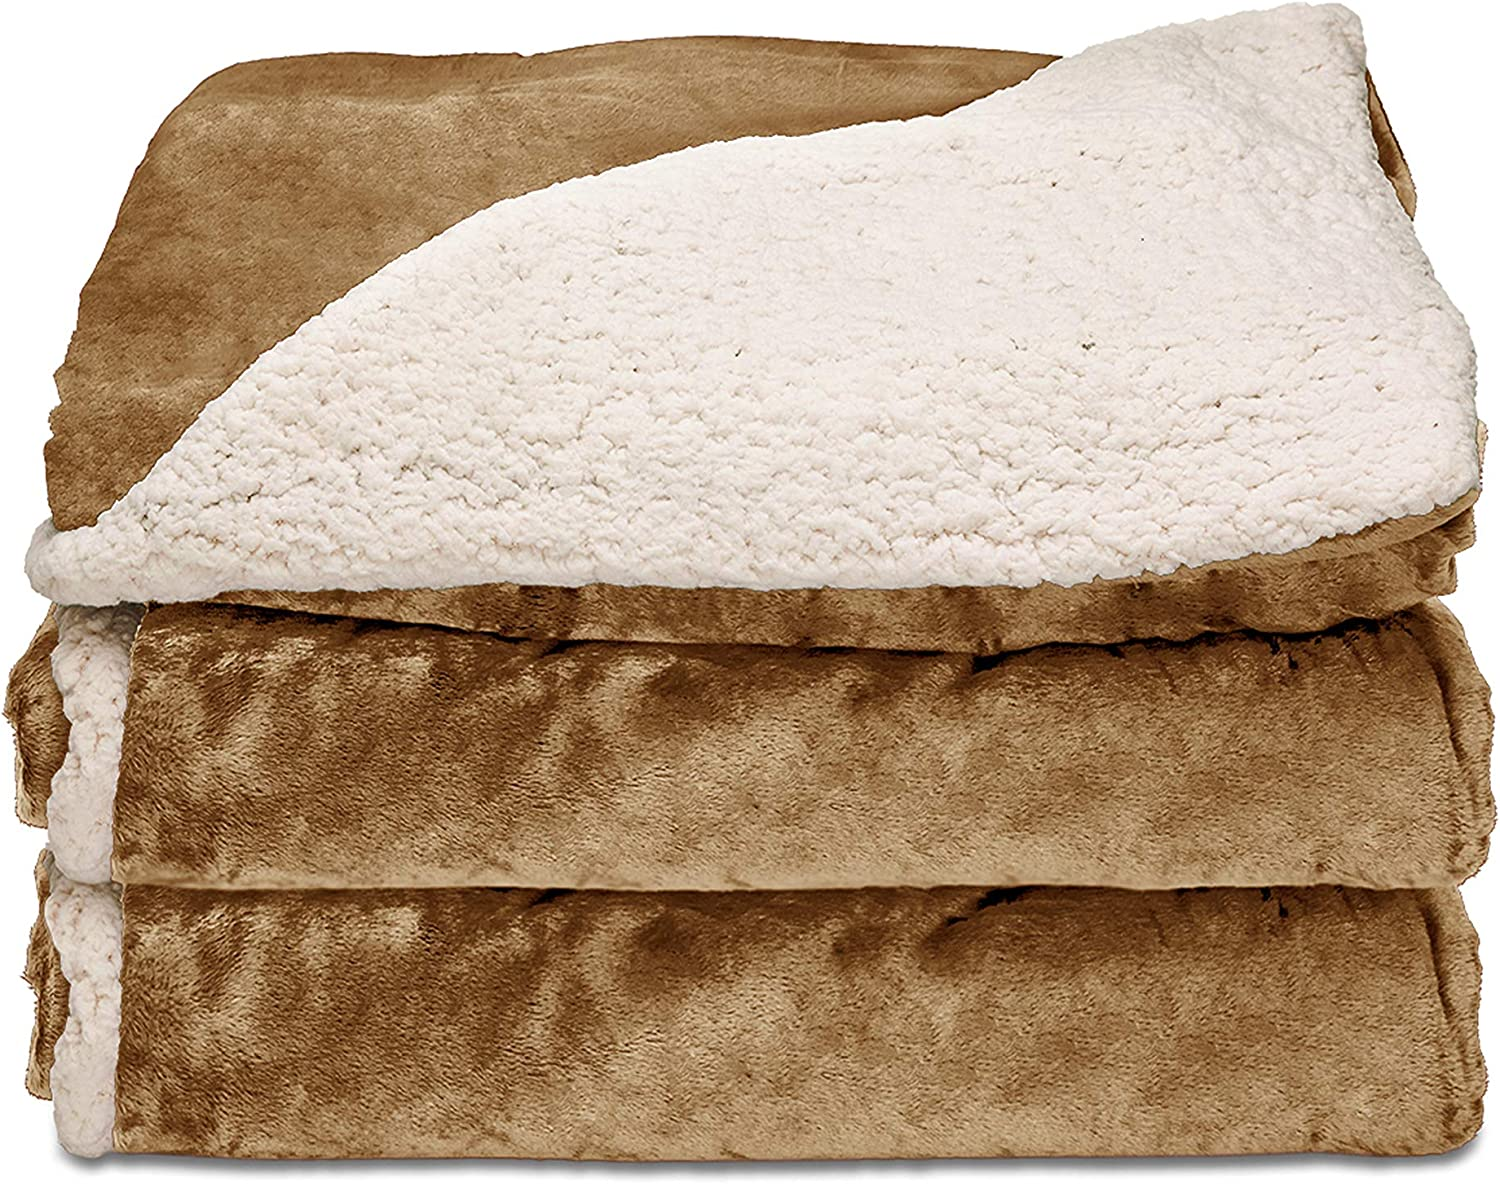 Sunbeam Heated Throw Blanket Reversible Mink H Popular products Sherpa specialty shop 3 Royal